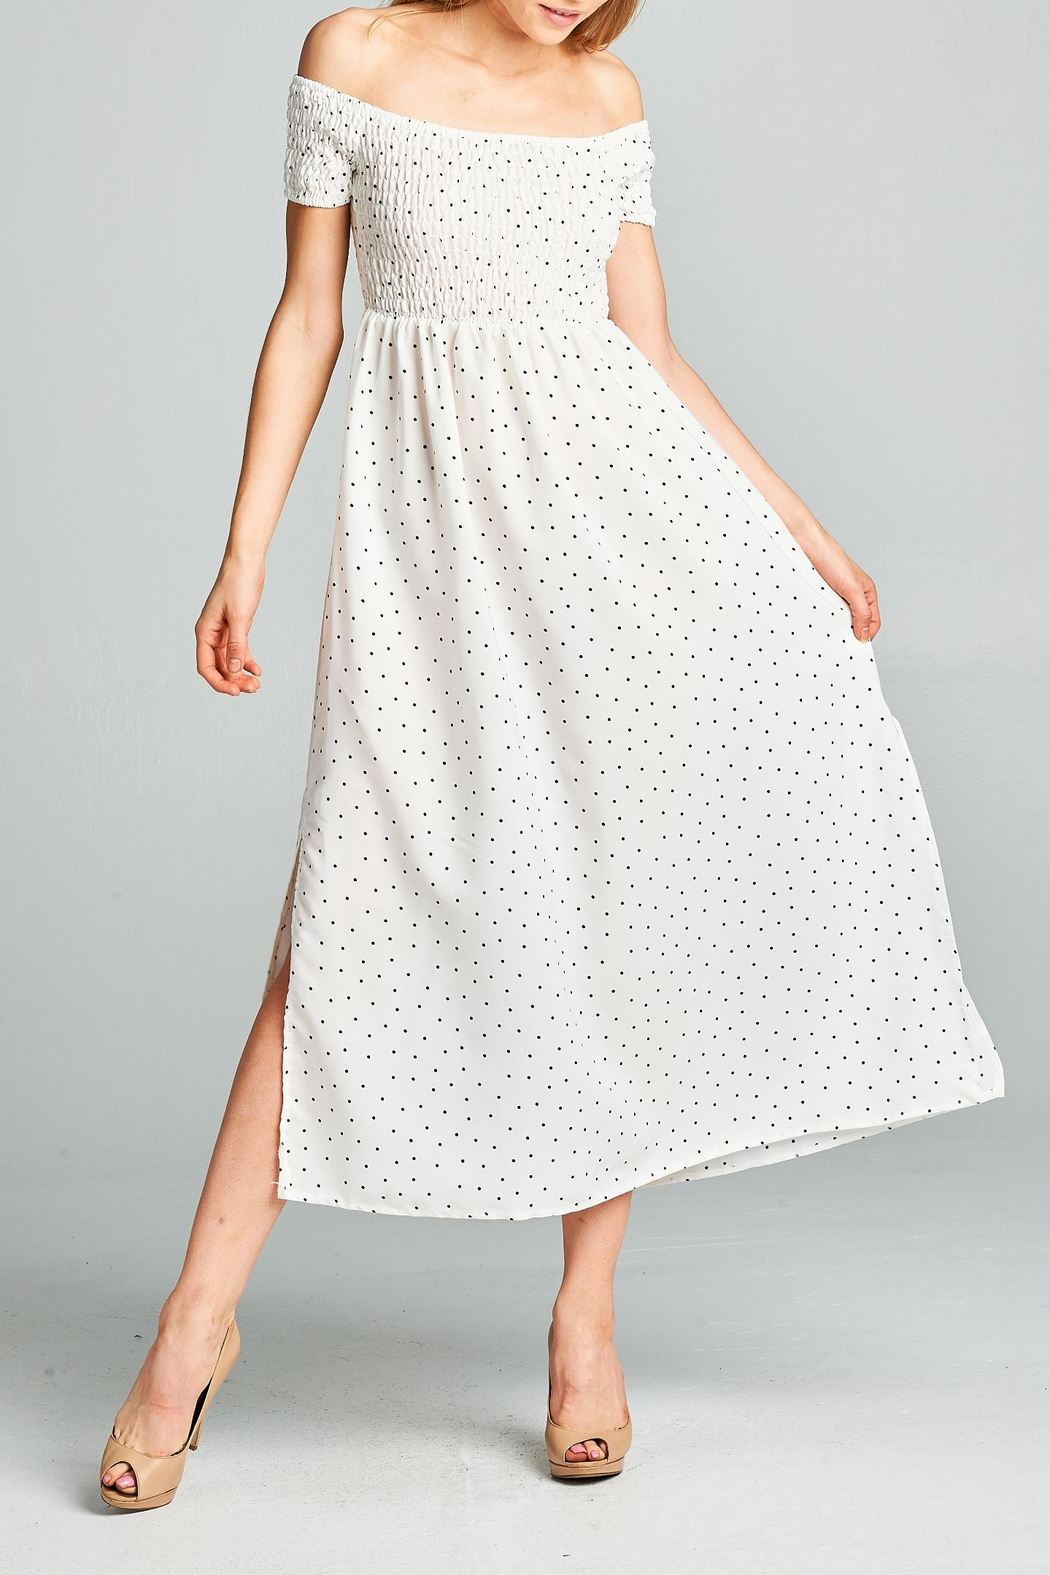 Racine Polka Dot Midi Dress - Main Image